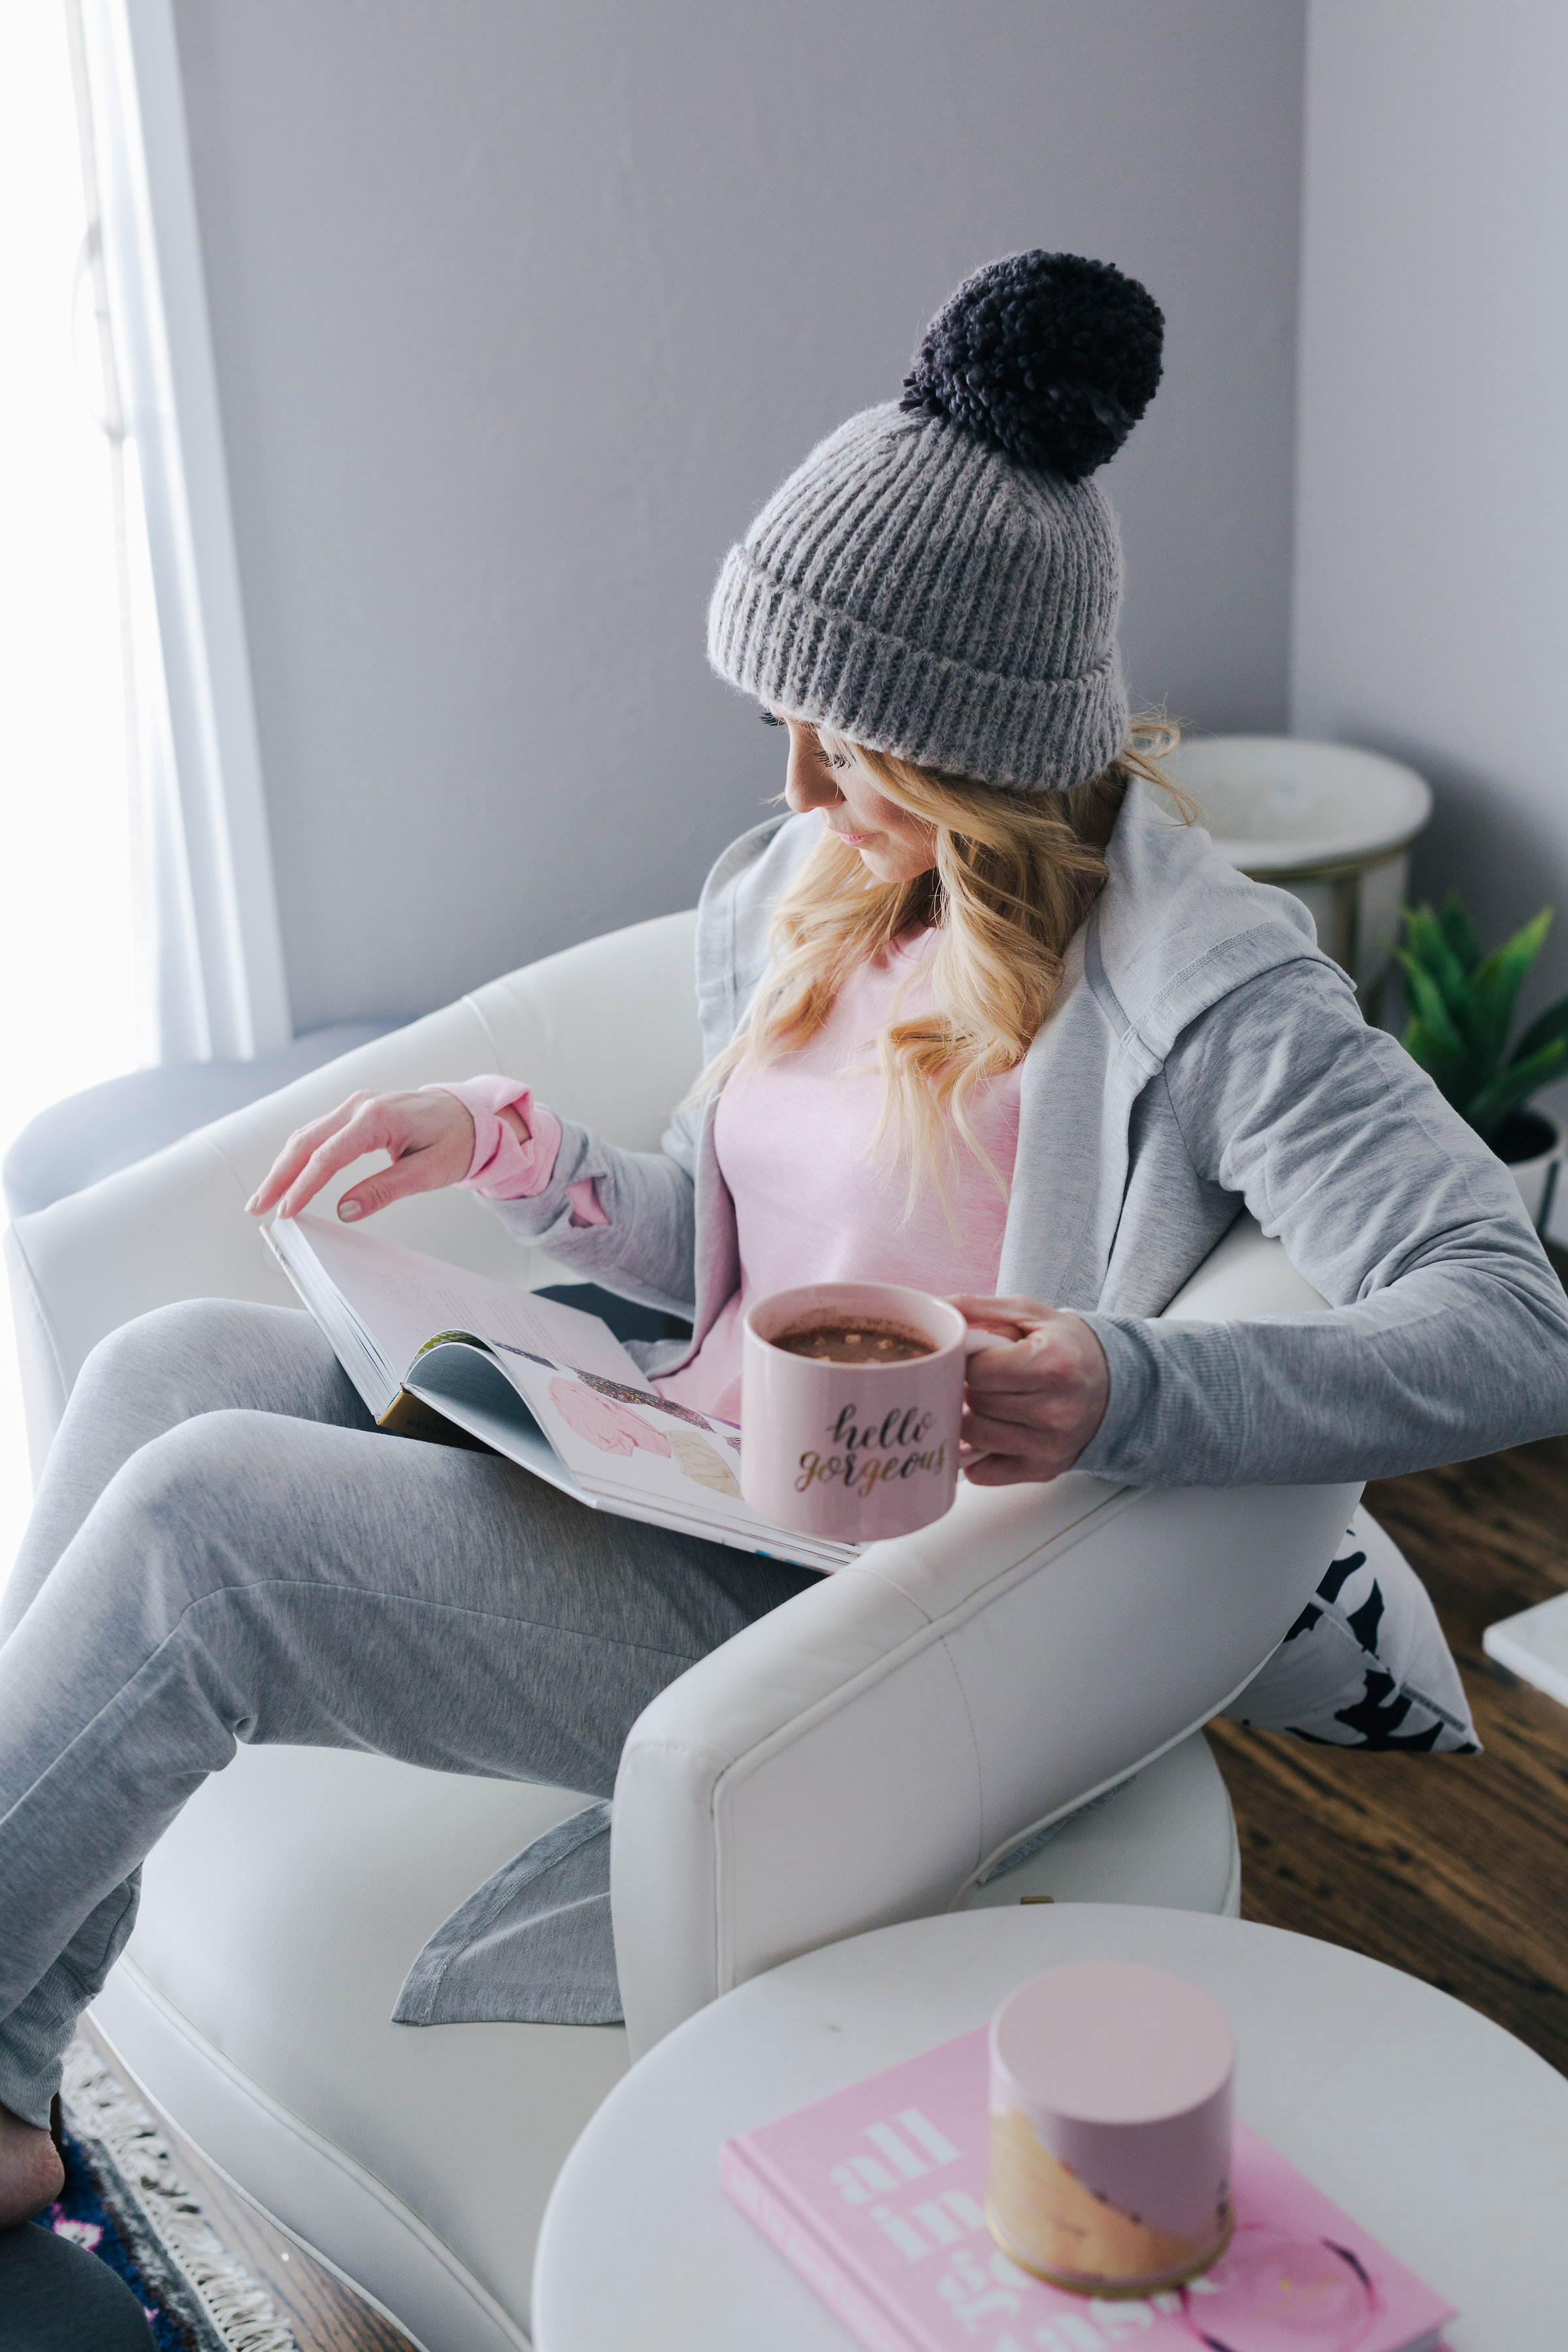 The Comfiest Comfy Clothes in all the Land by popular San Francisco fashion blogger For the Love